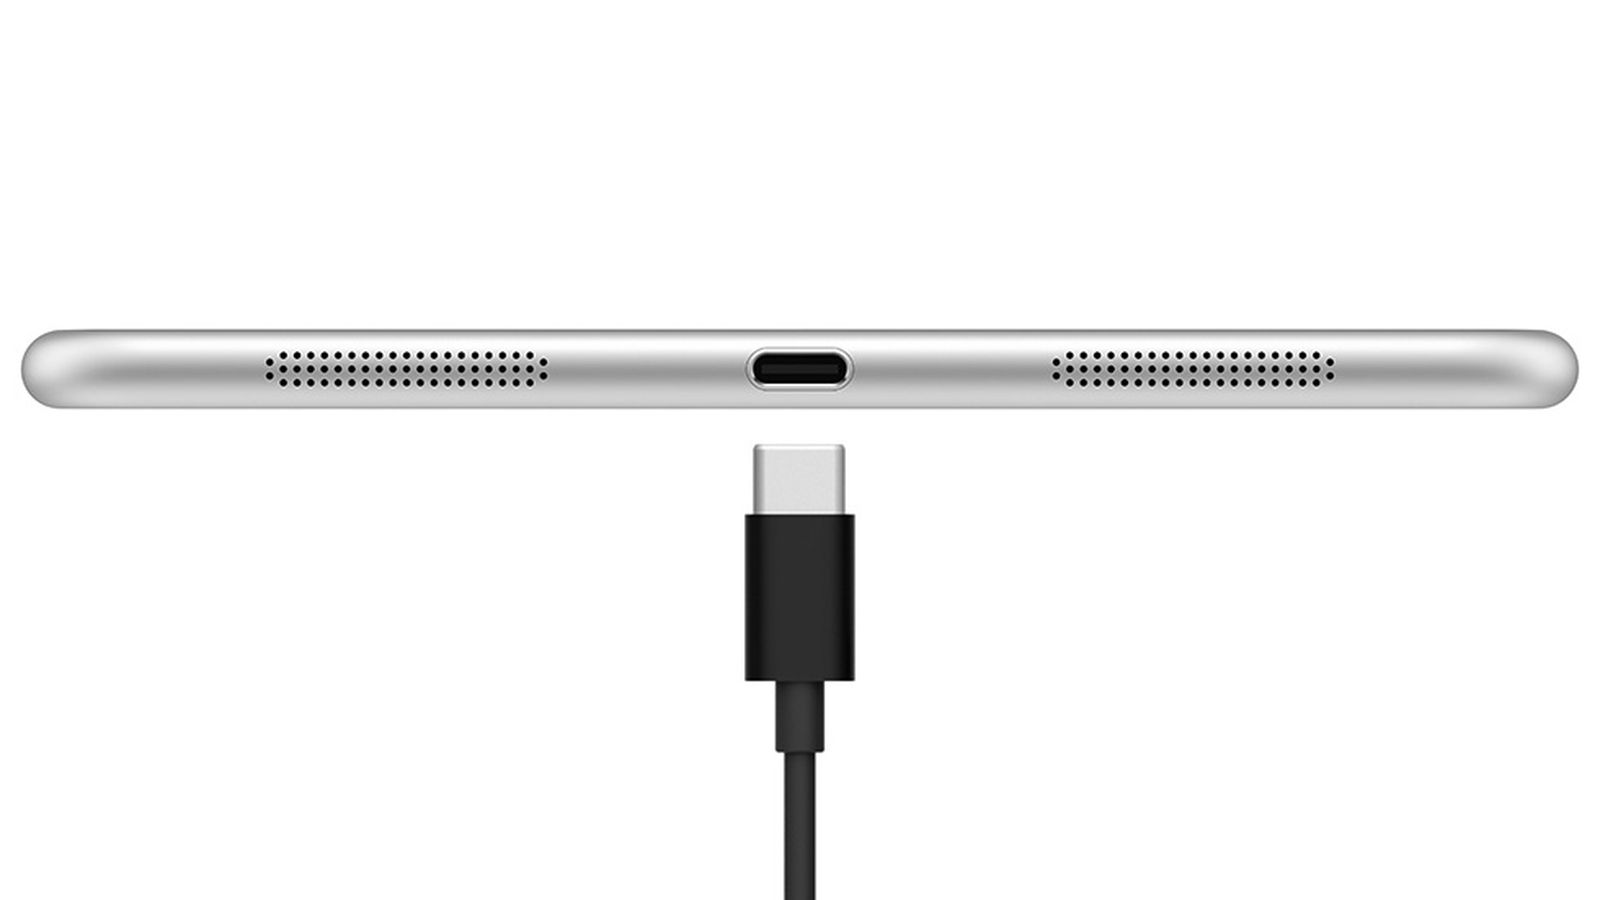 Usb C Cables Are Playing Russian Roulette With Your Laptop